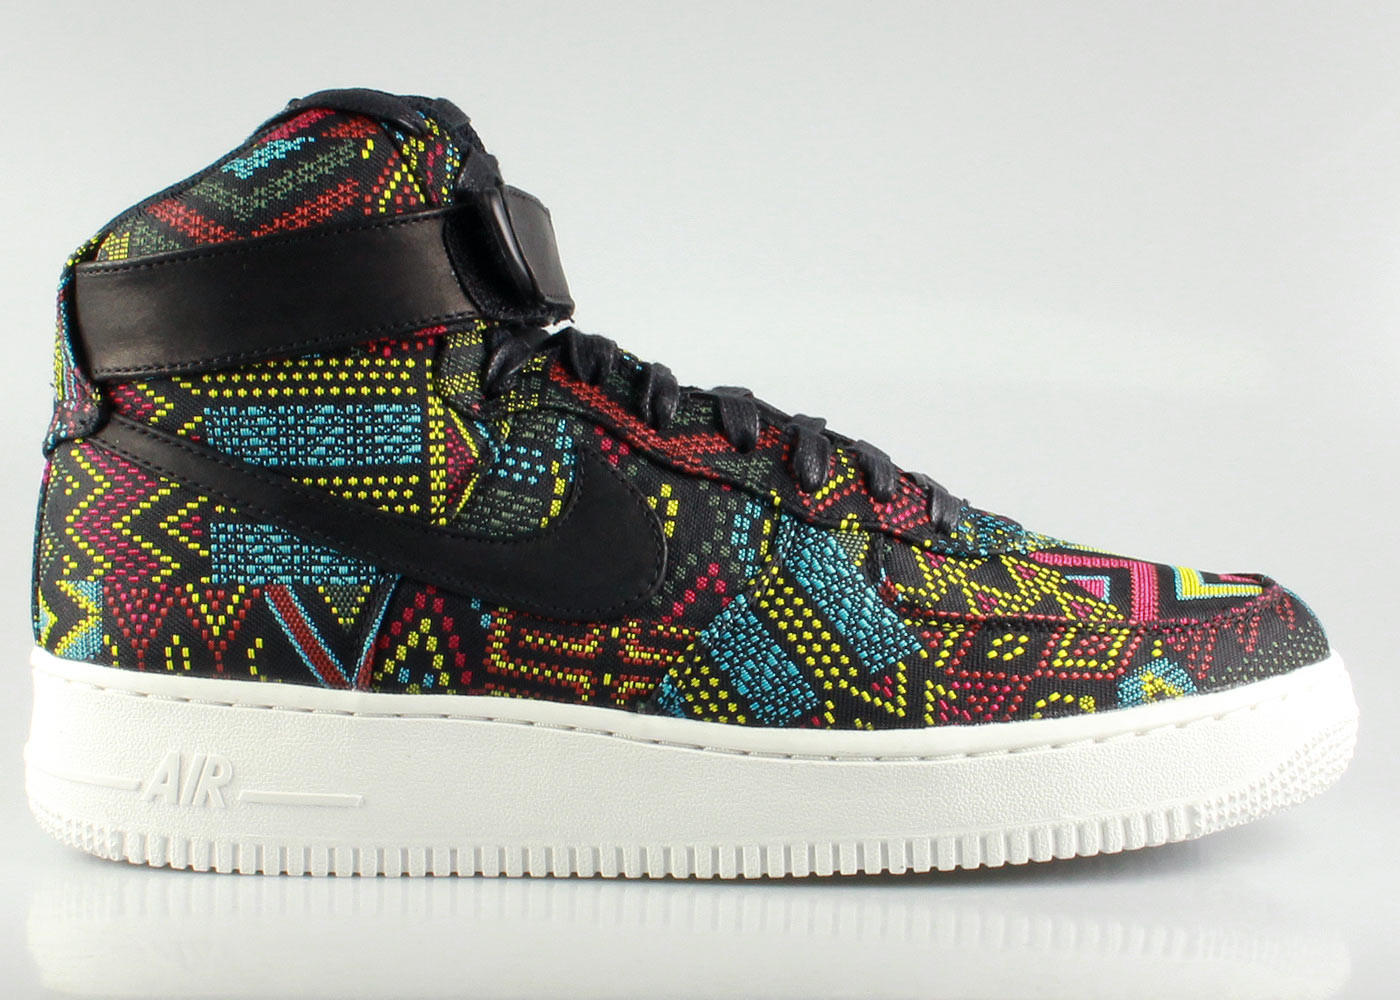 Nike Men s Air Force 1 High QS BHM - from KickzStore  a1c5ced952f1